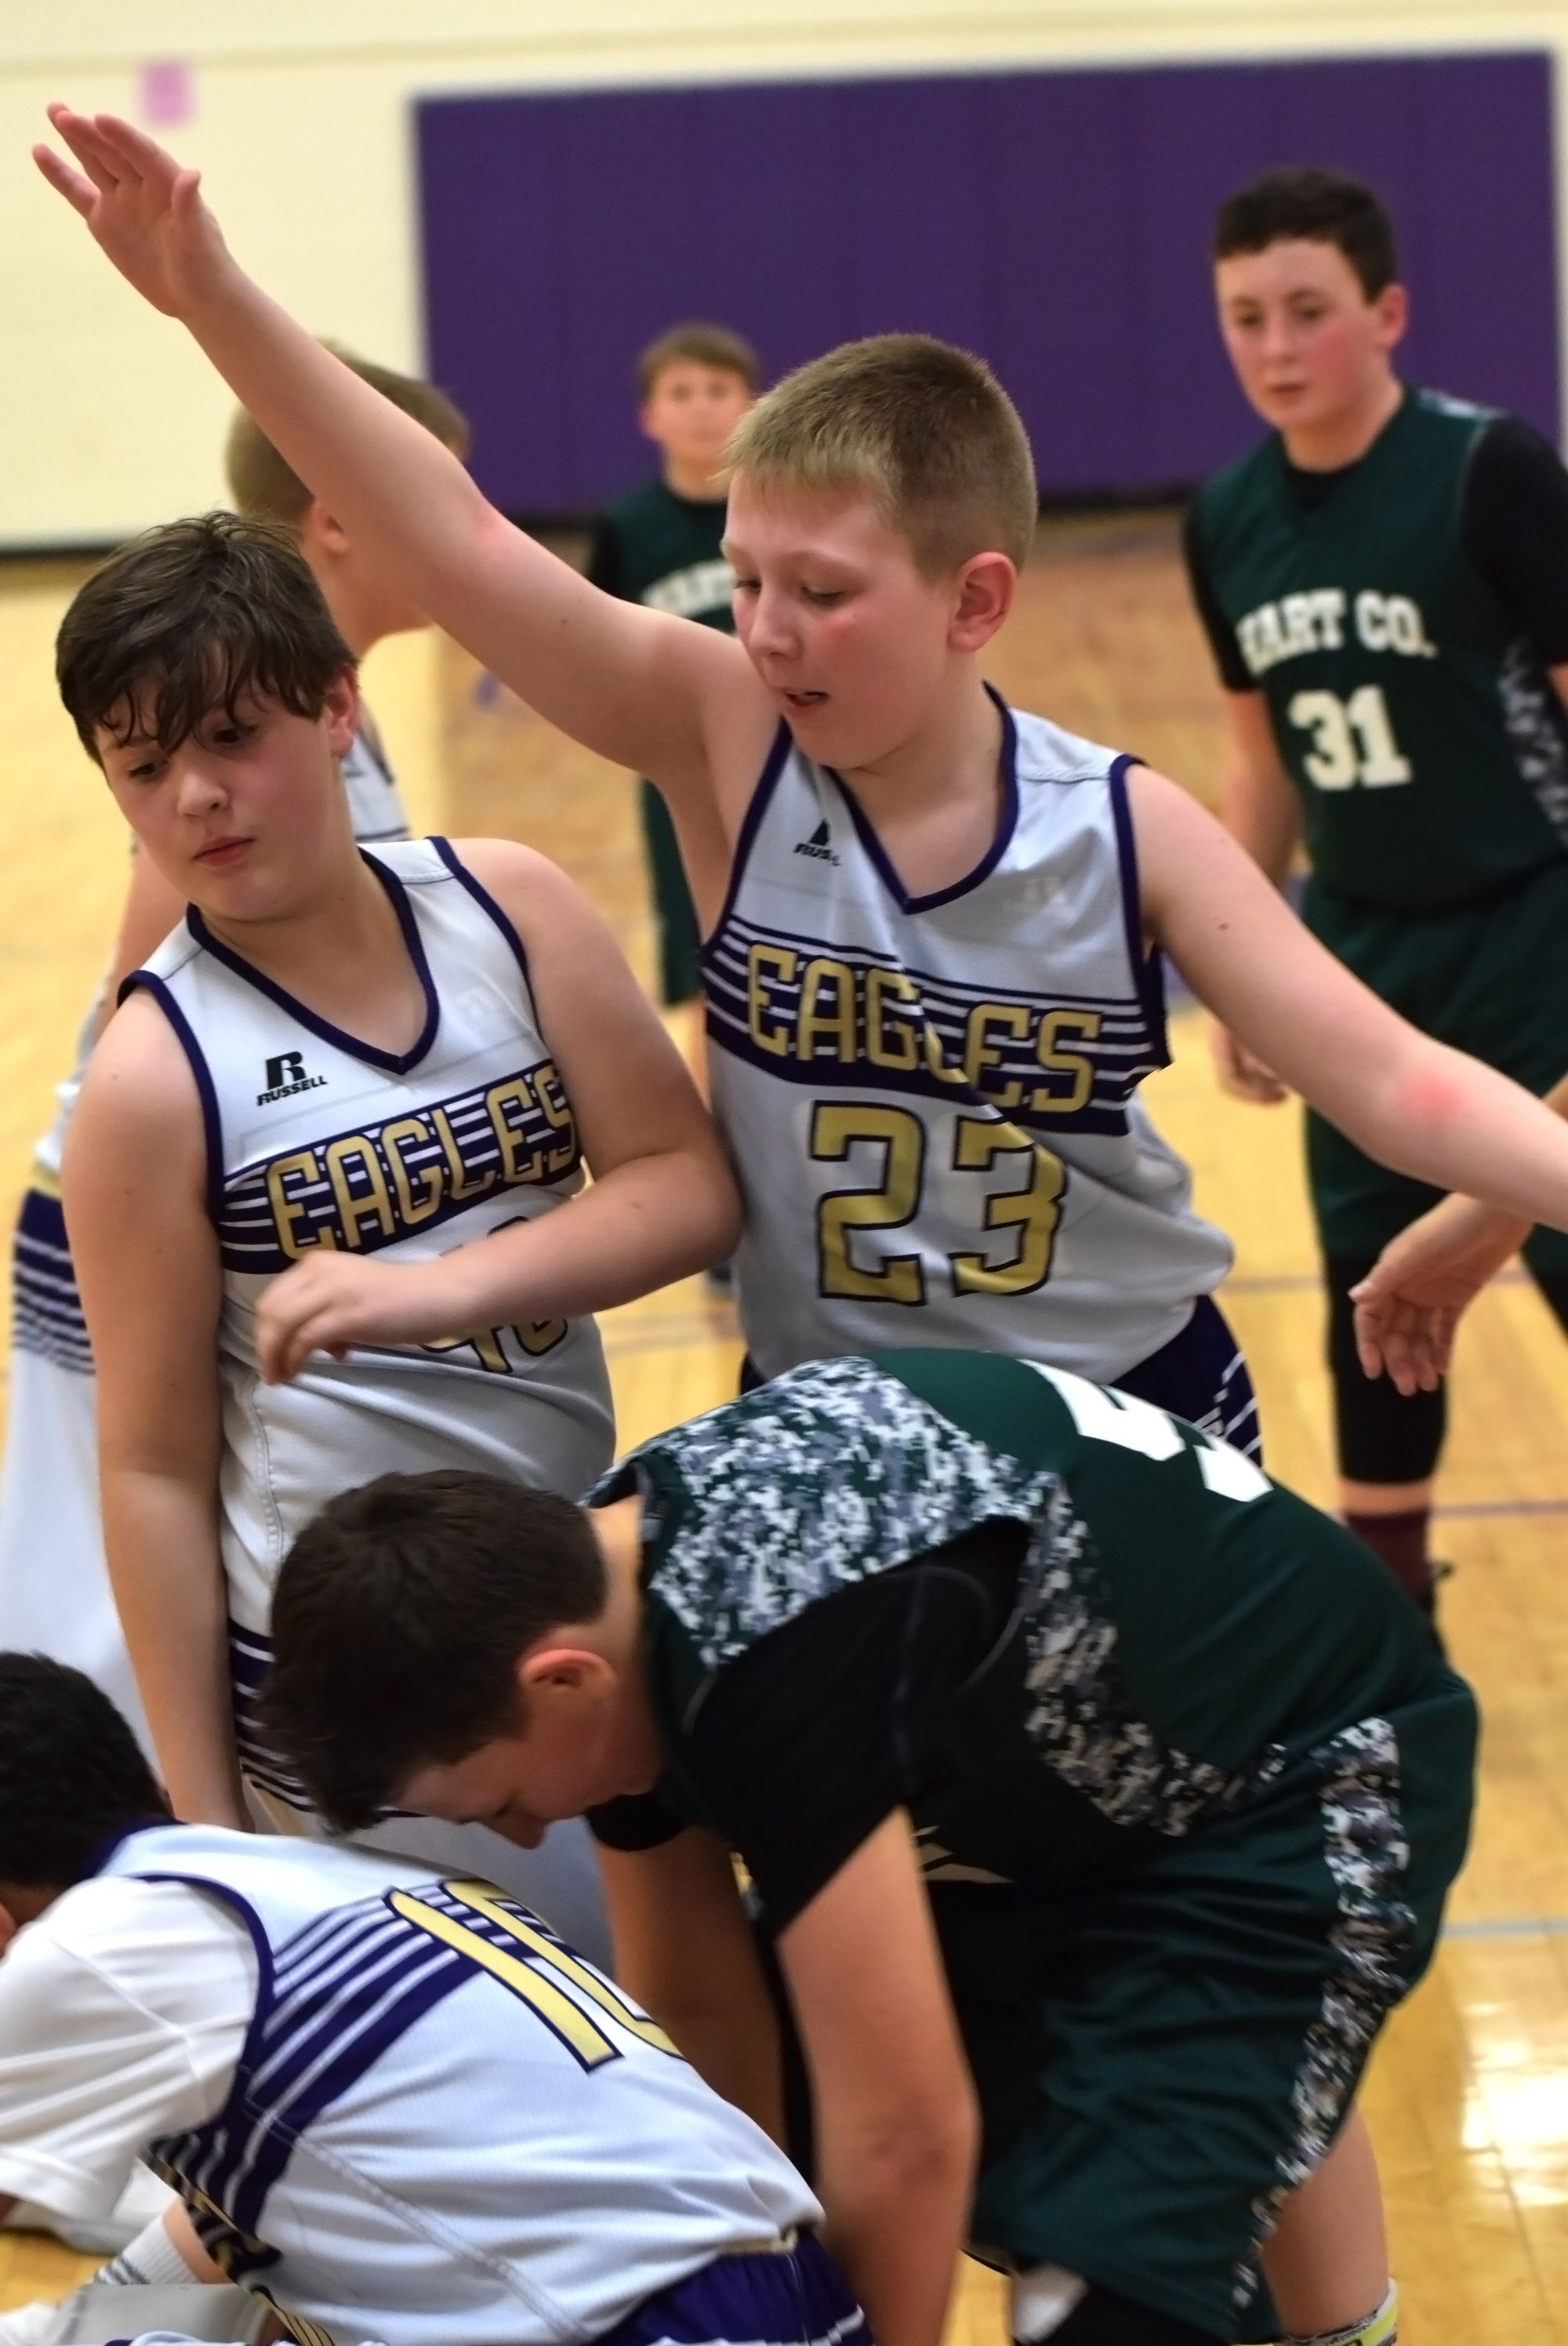 Campbellsville Elementary School fifth-graders Andrew Mardis, at left, and Kaleb Miller play defense.